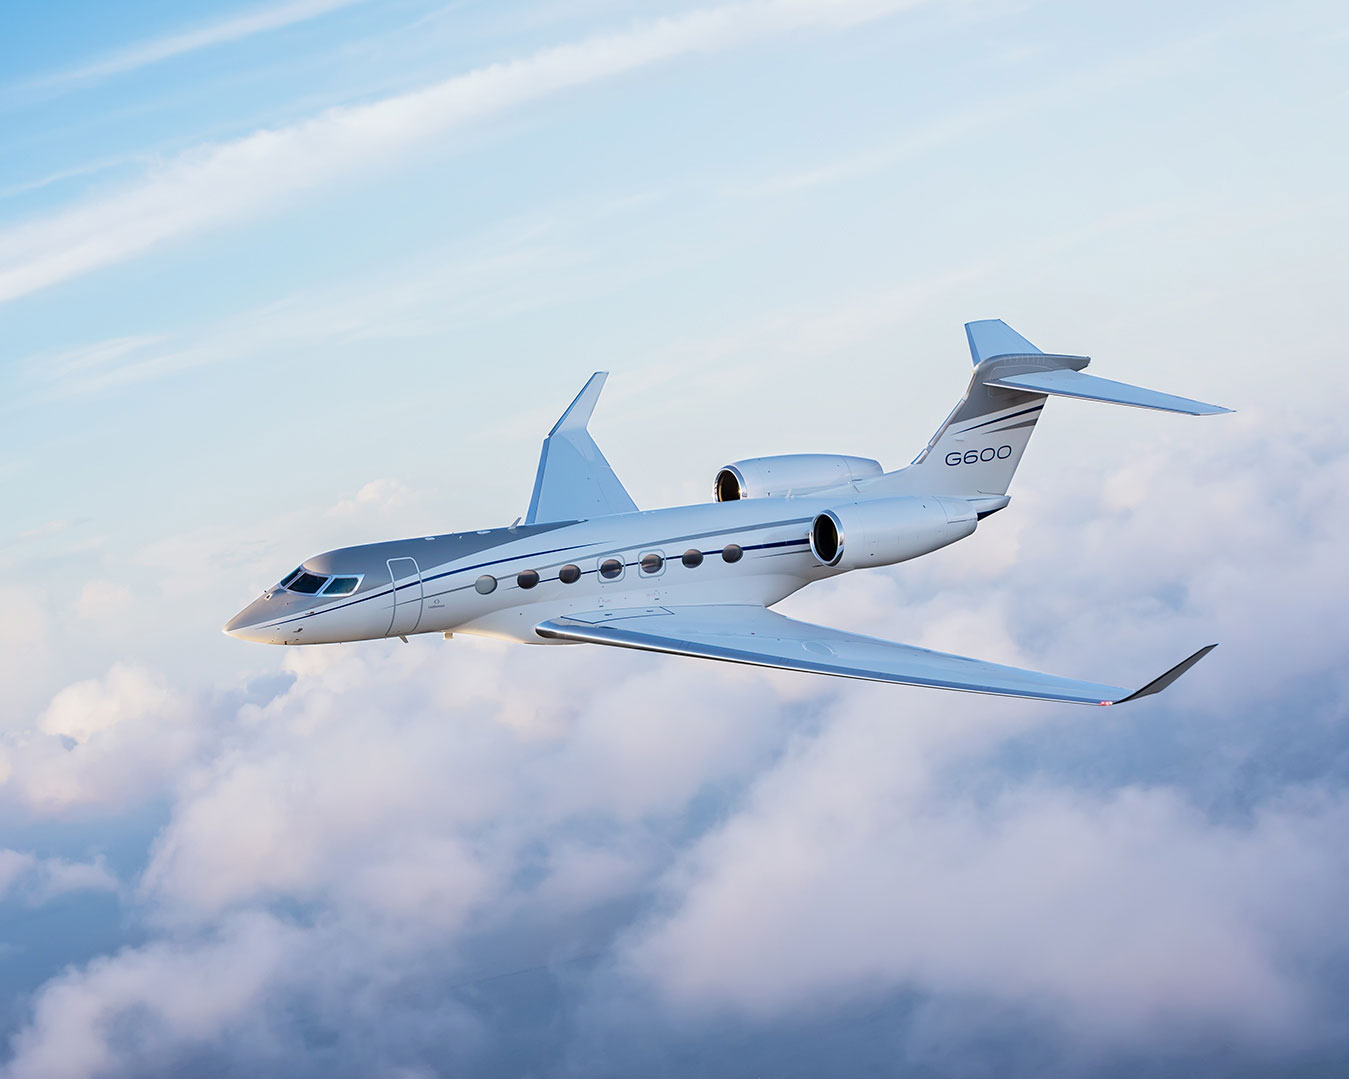 G600 flying in the clouds